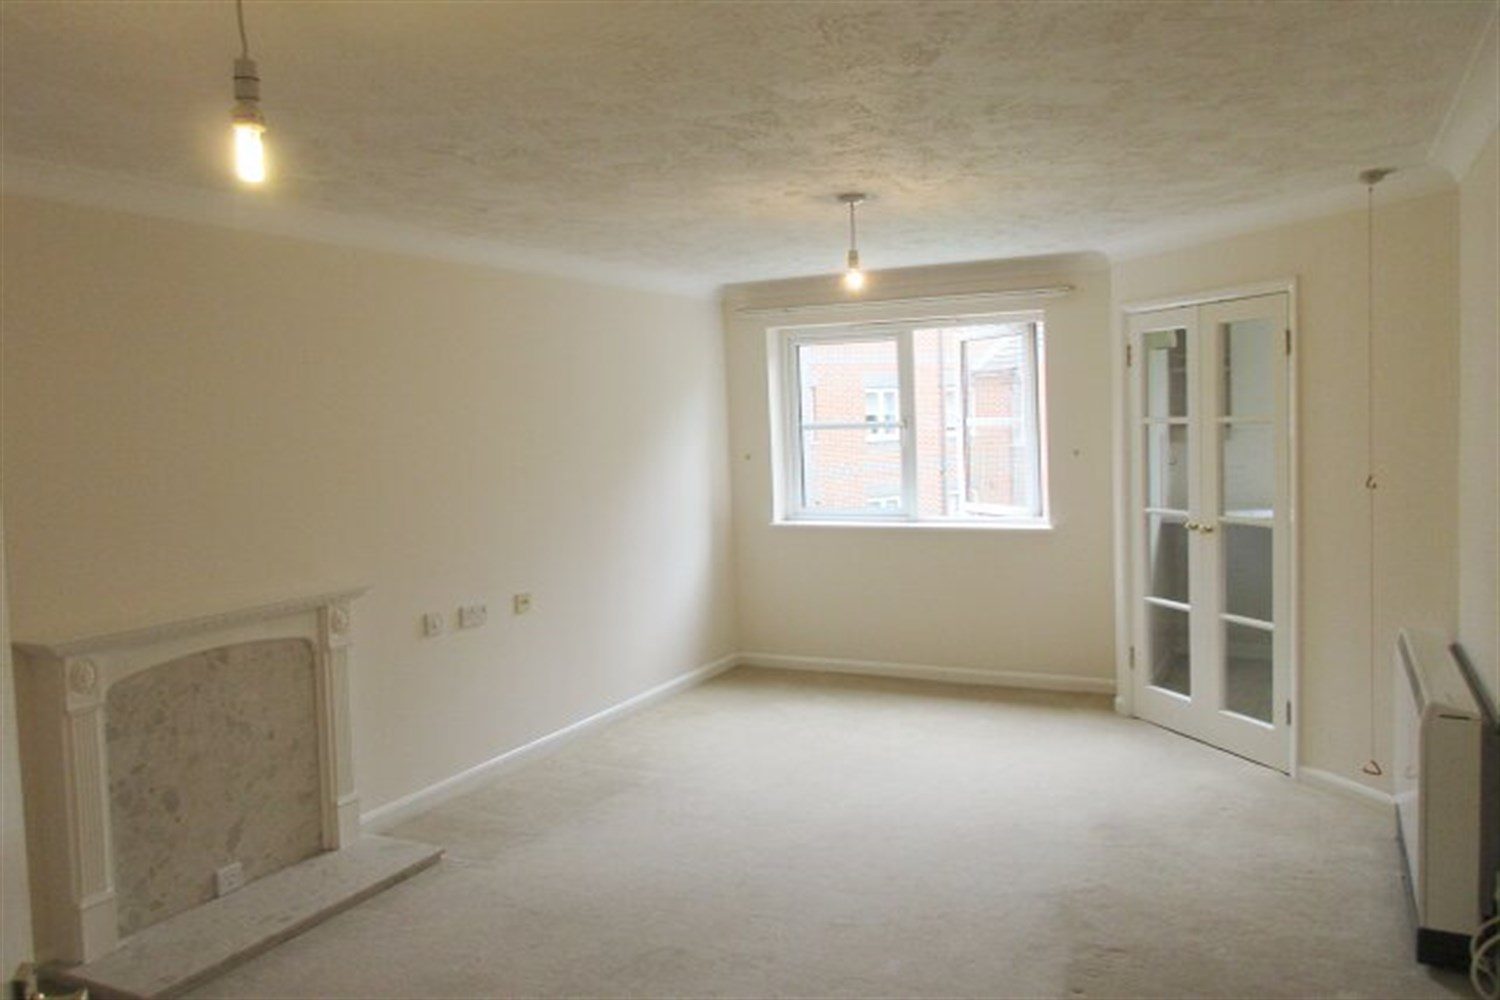 Lewisham, Greater London 1 bedroom to let